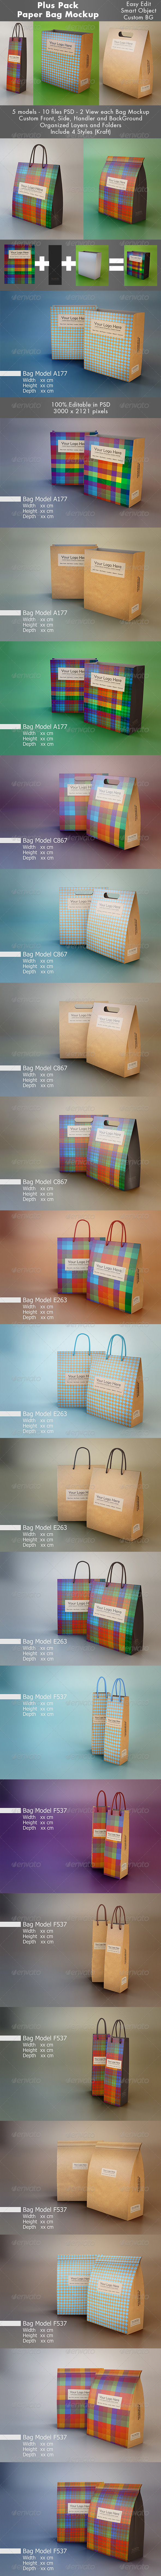 GraphicRiver Plus Pack Bag Mockup 7142611